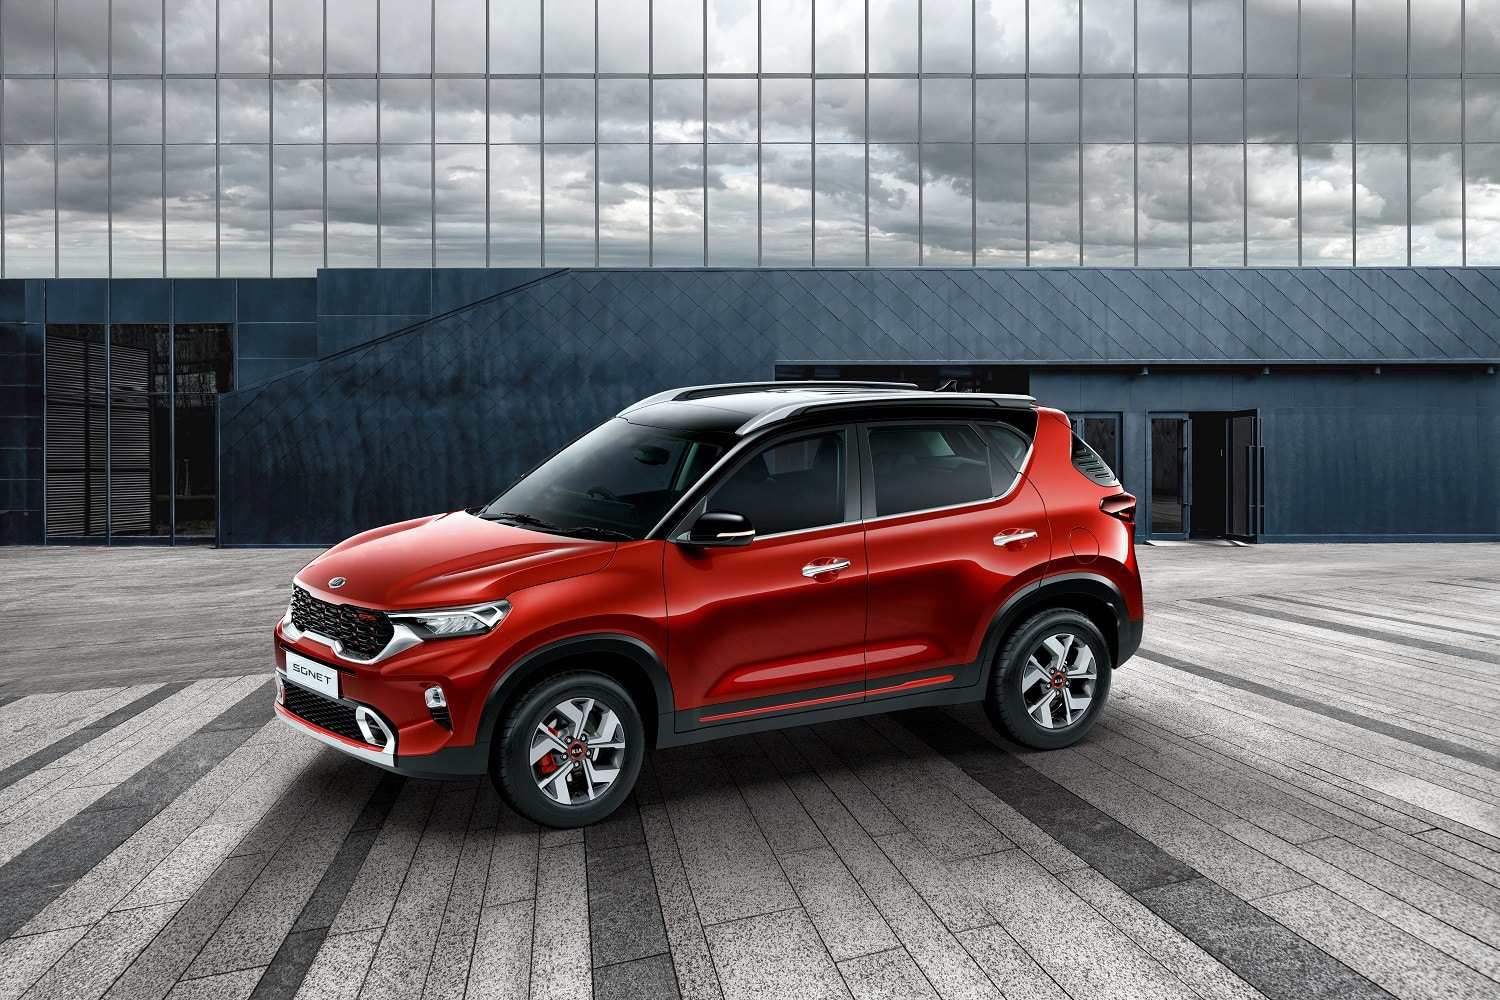 Made in India smart urban compact SUV Kia Sonet launched for the global market